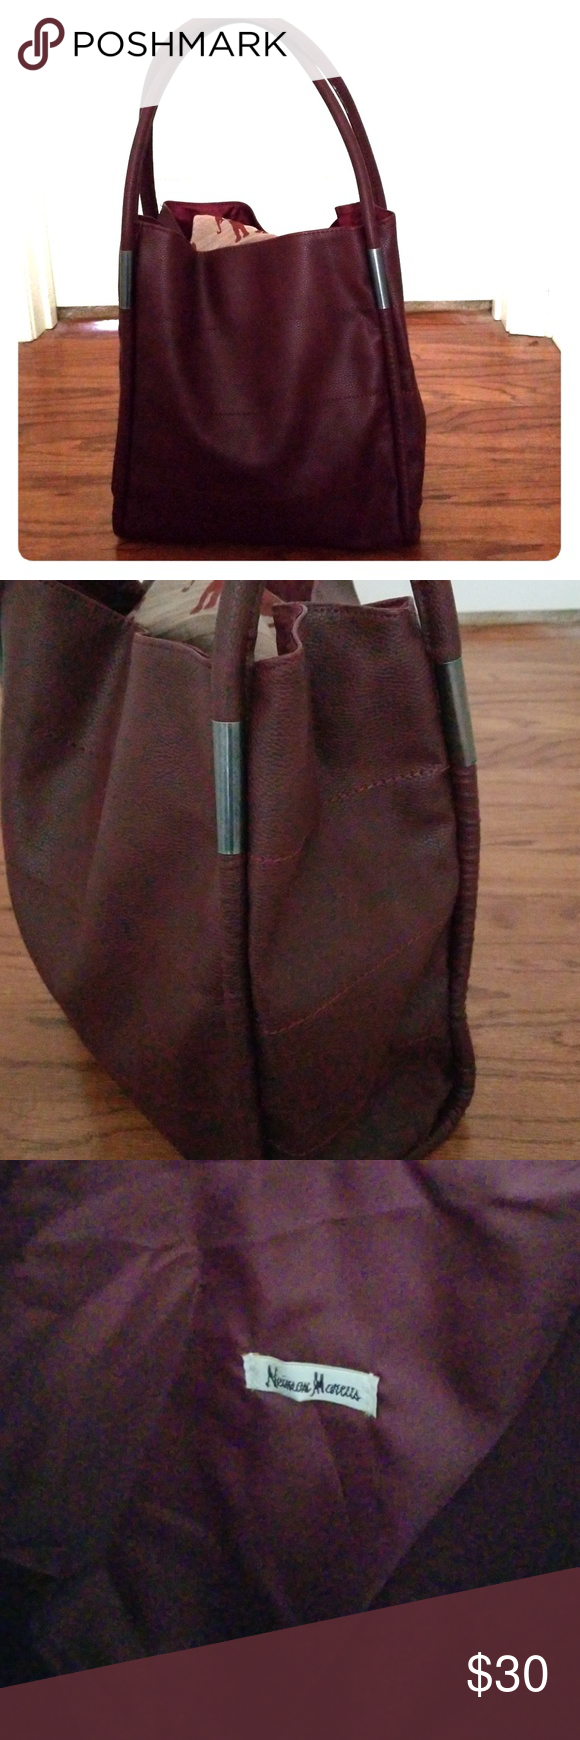 2037020b5d26 NEIMAN MARCUS tote NEIMAN MARCUS burgundy wine colored faux leather tote.  Approximately 12